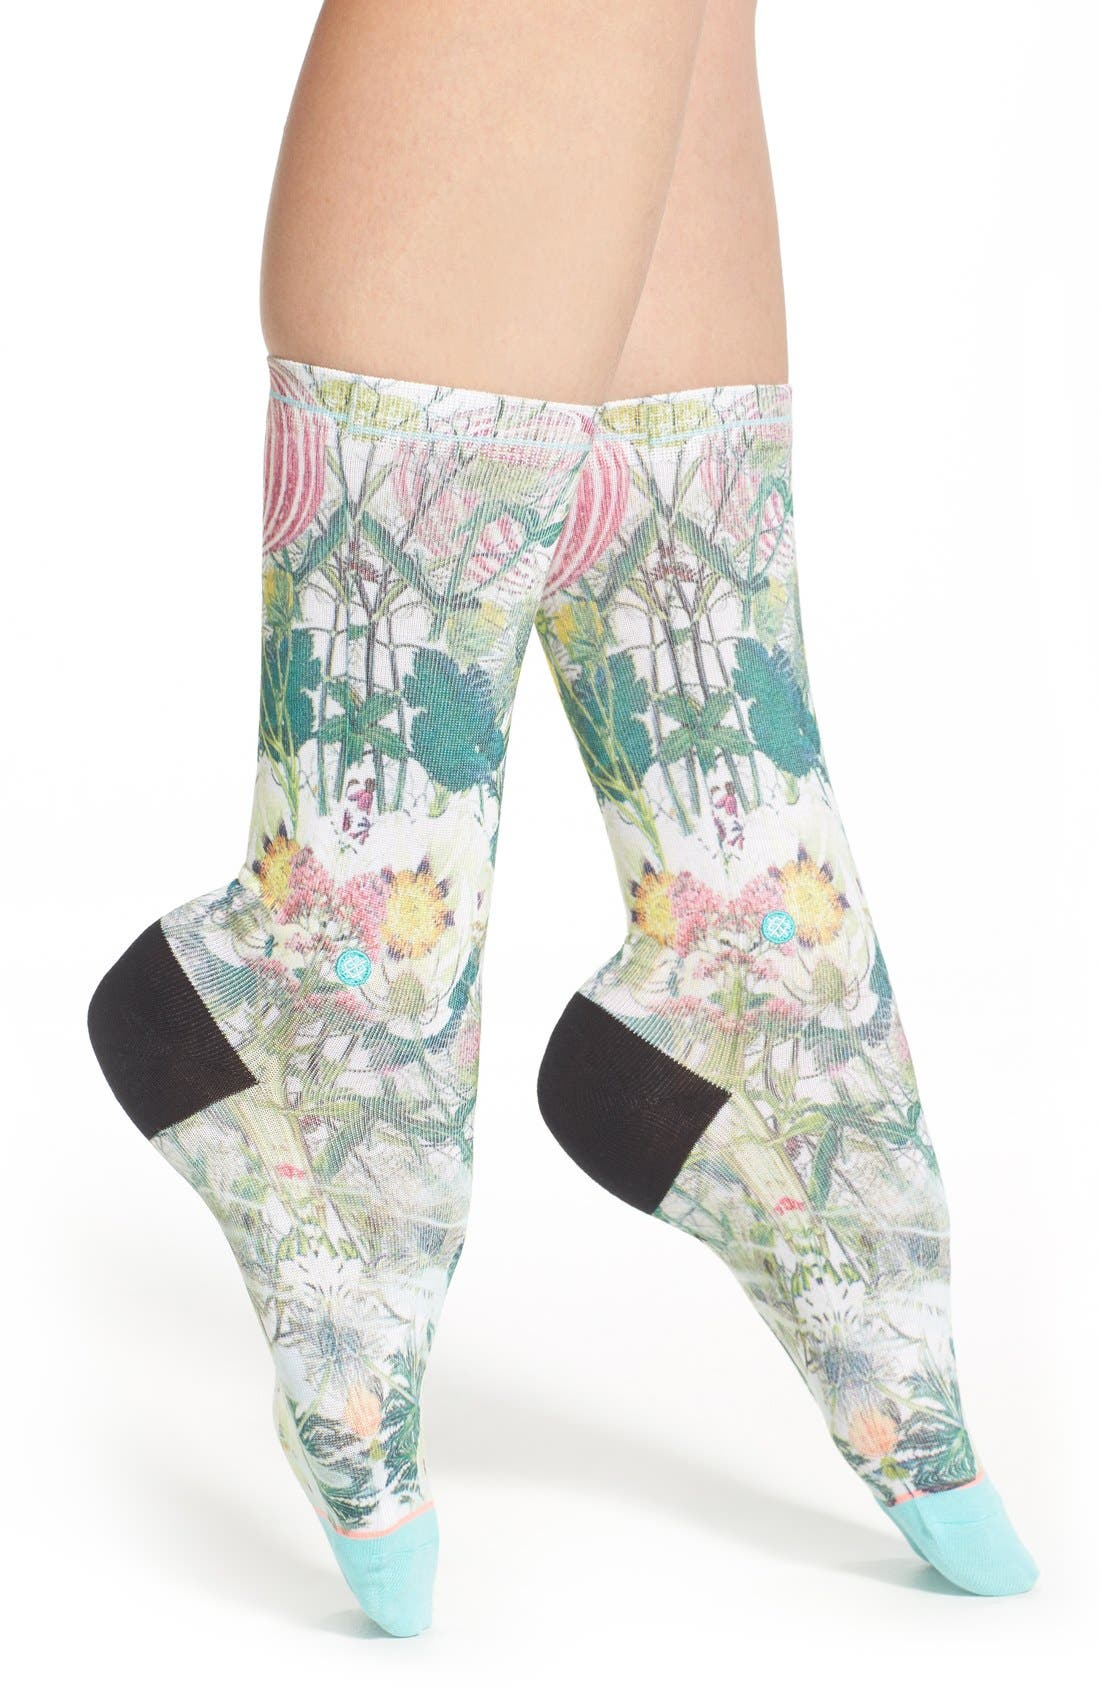 Main Image - Stance 'Chaotic Flower' Socks